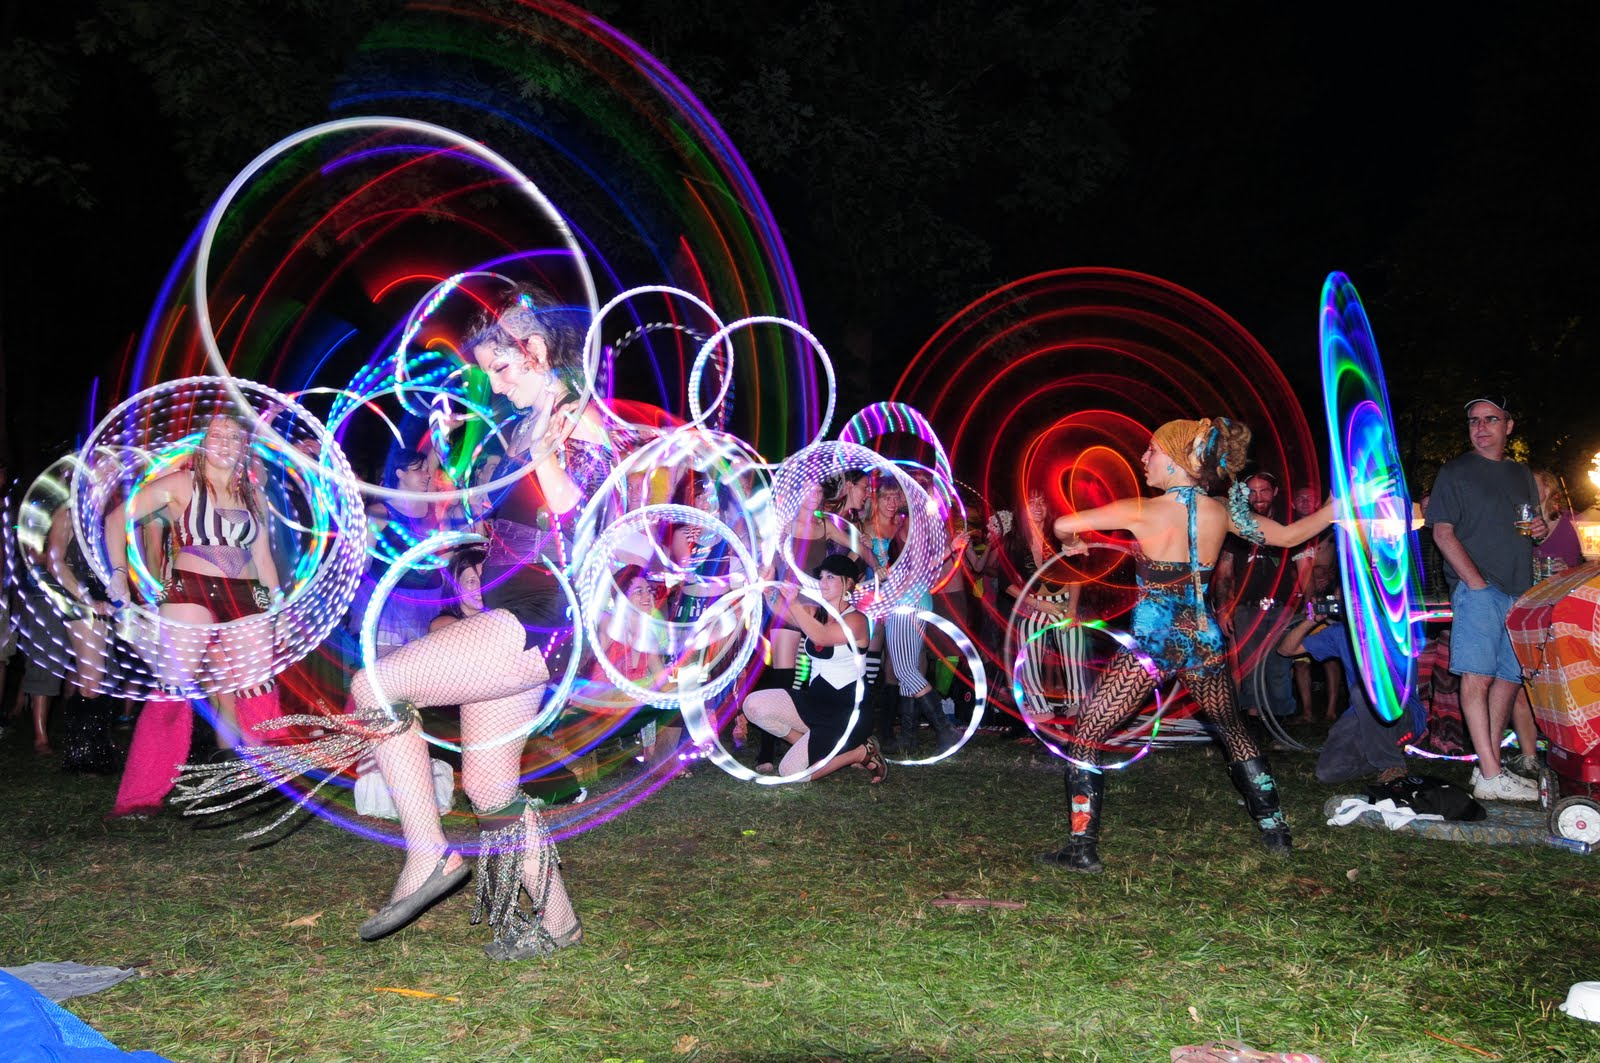 Hoopers at Electric Forest